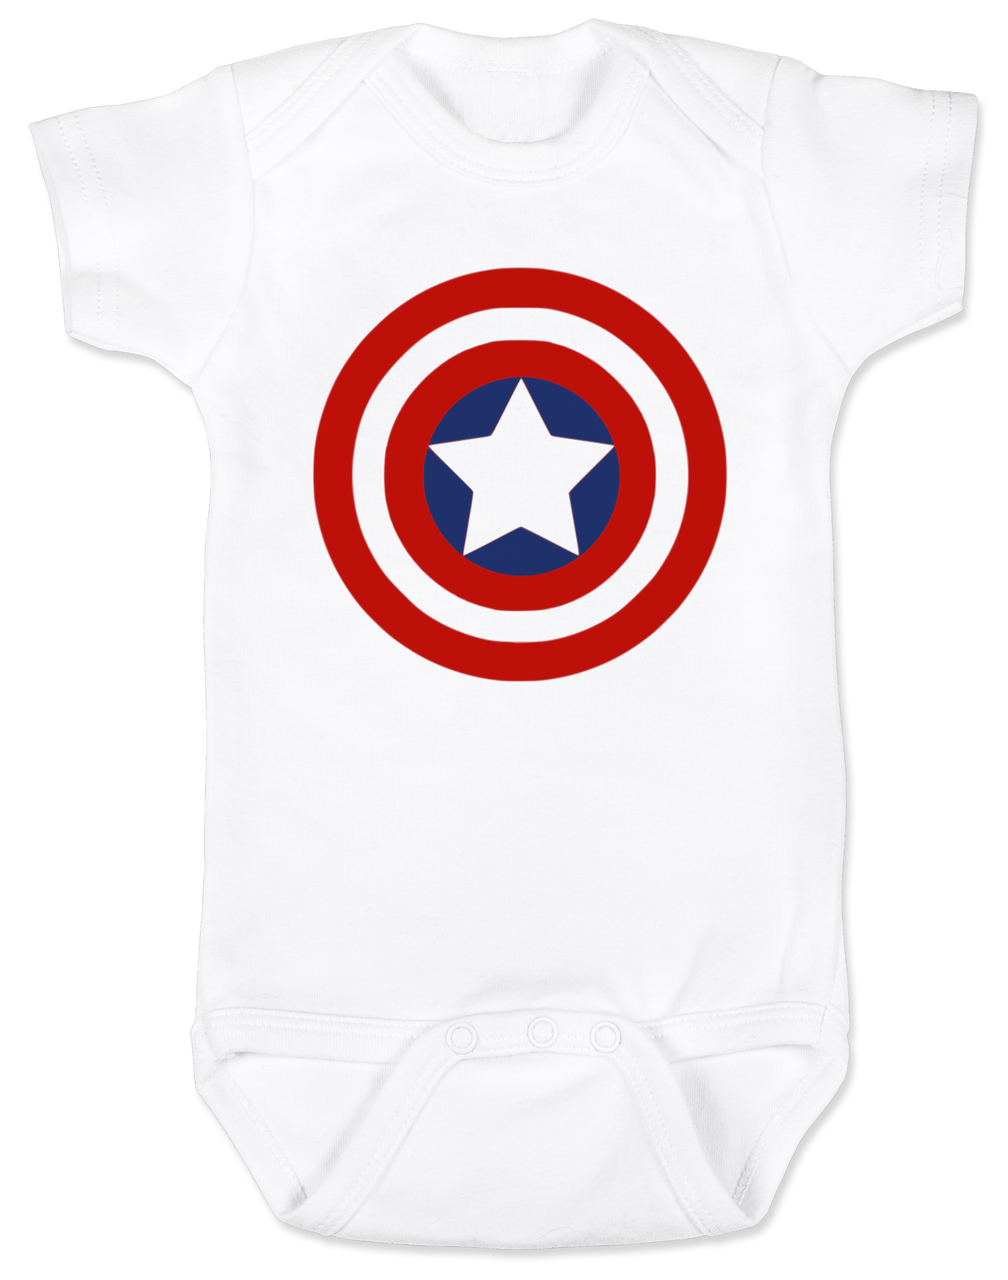 Captain America Baby Bodysuit, Patriotic baby onsie, 4th of July, Fourth of July